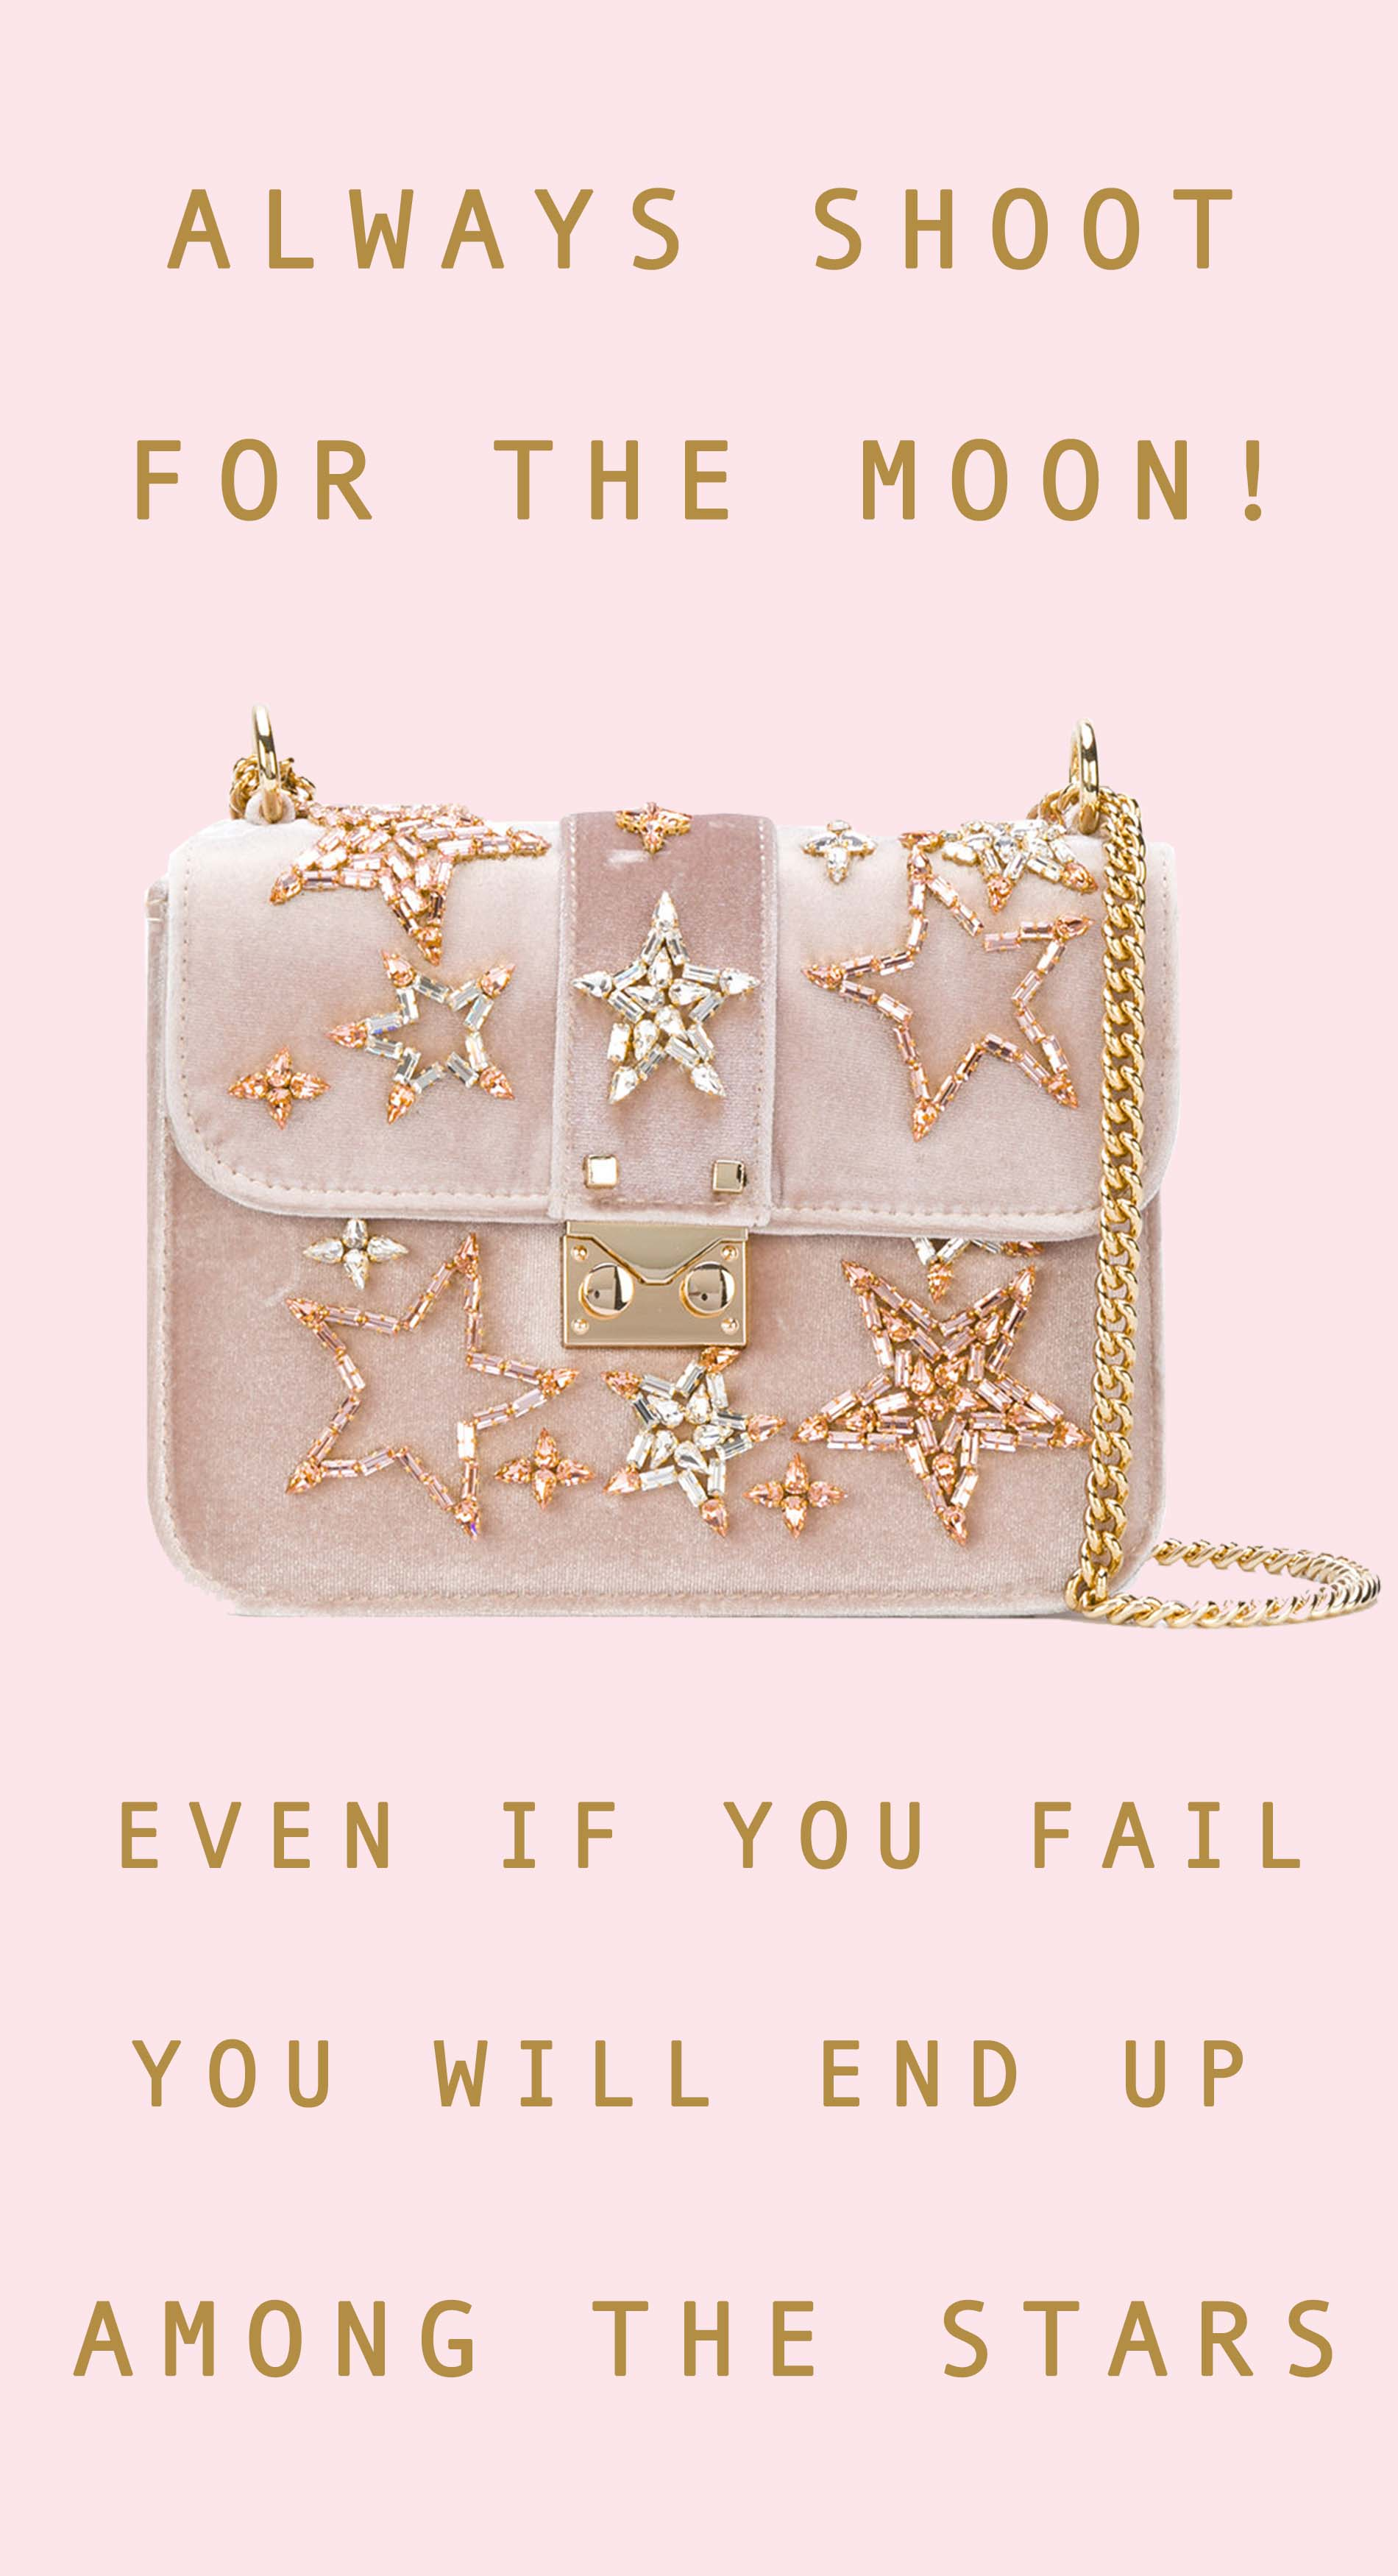 Live Gold Quotes Delectable Pink And Gold Quotes And Pink Bags  Brunette From Wall Street